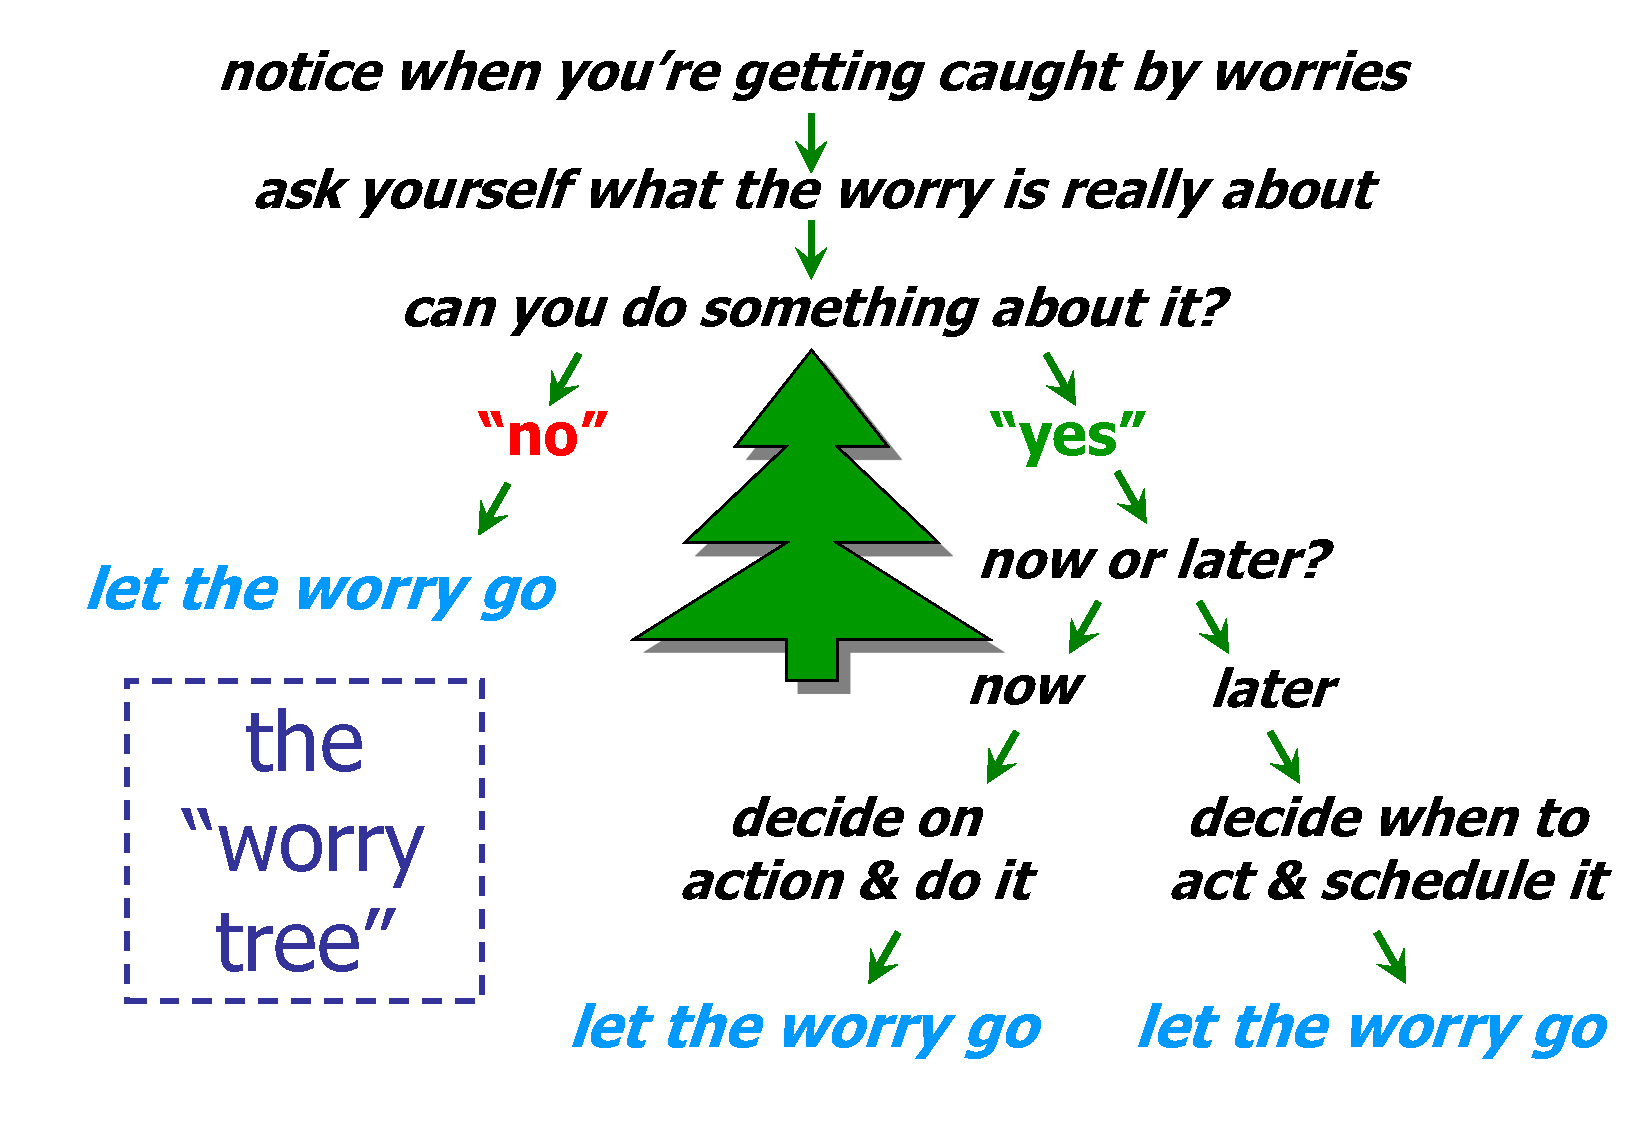 How To Help Stop Worrying